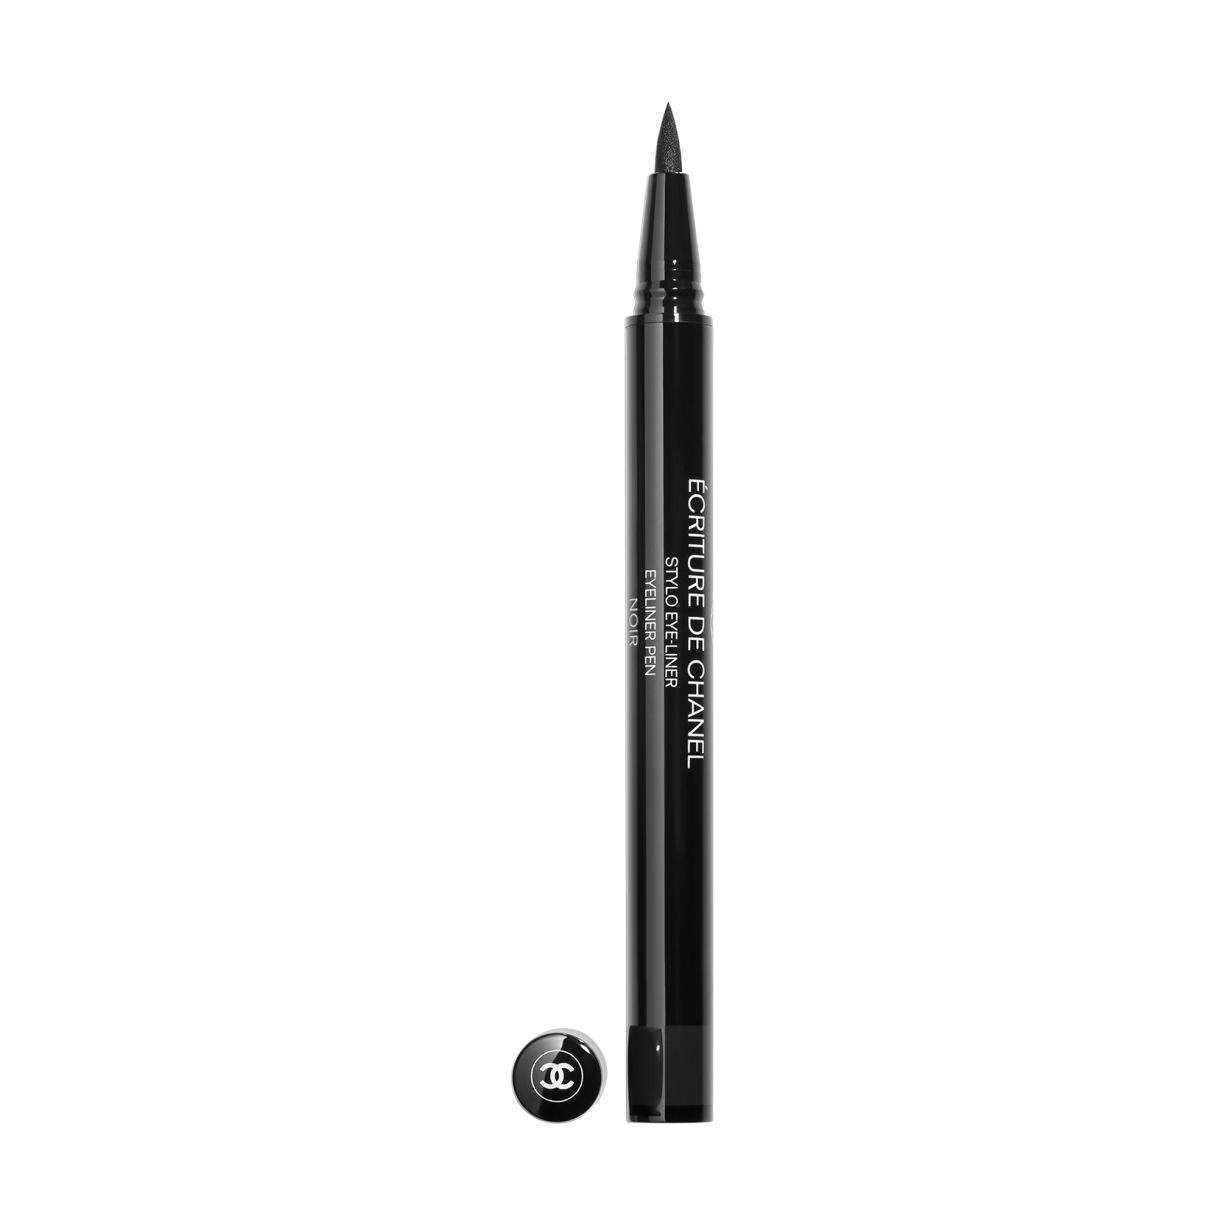 ÉCRITURE DE CHANEL EYELINER PEN EFFORTLESS DEFINITION 10 NOIR 0.5ML